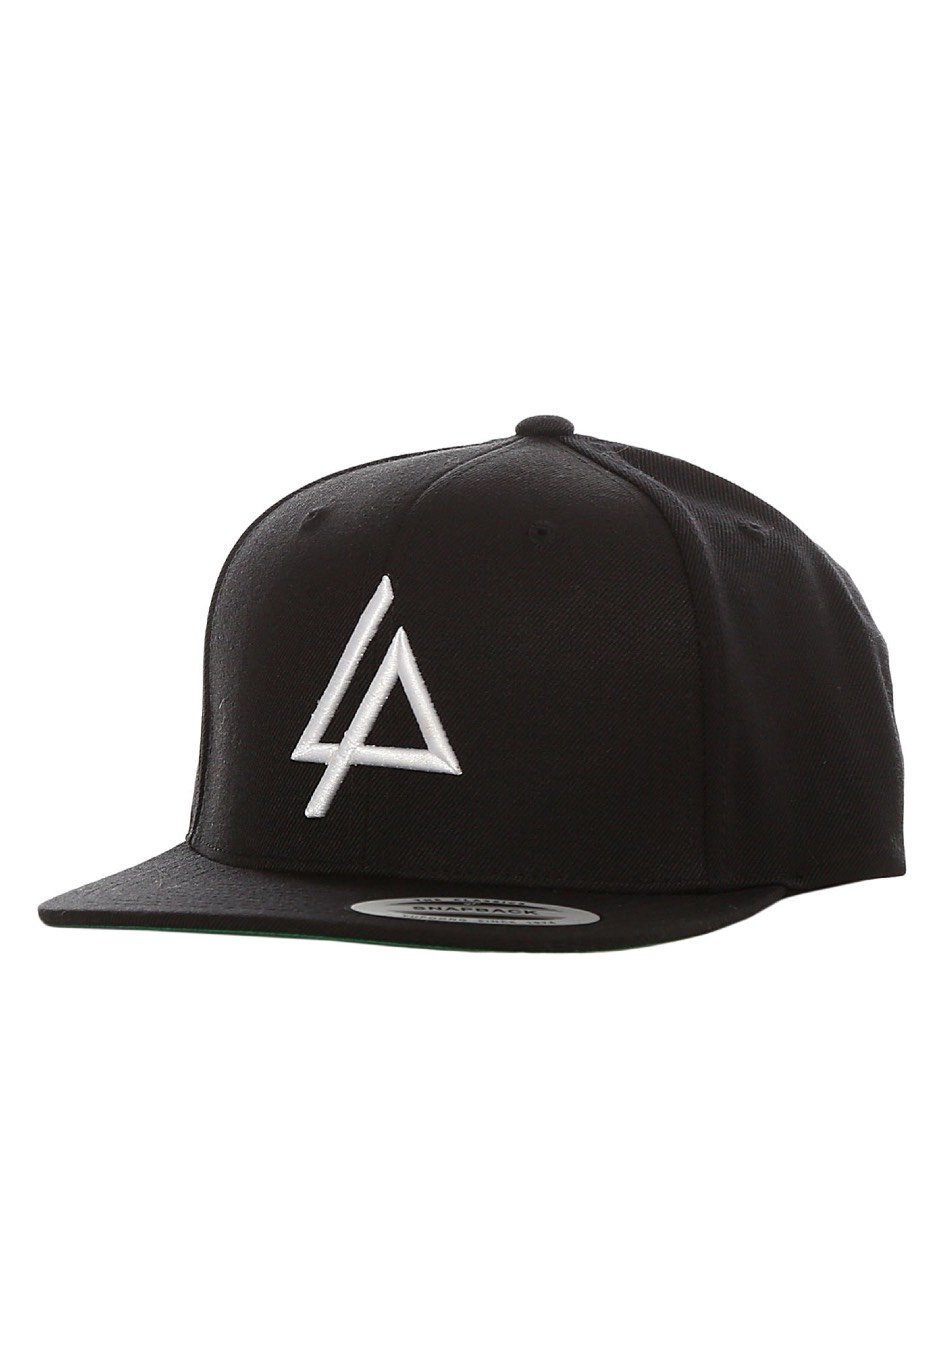 linkin park logo cap official metal merchandise shop. Black Bedroom Furniture Sets. Home Design Ideas